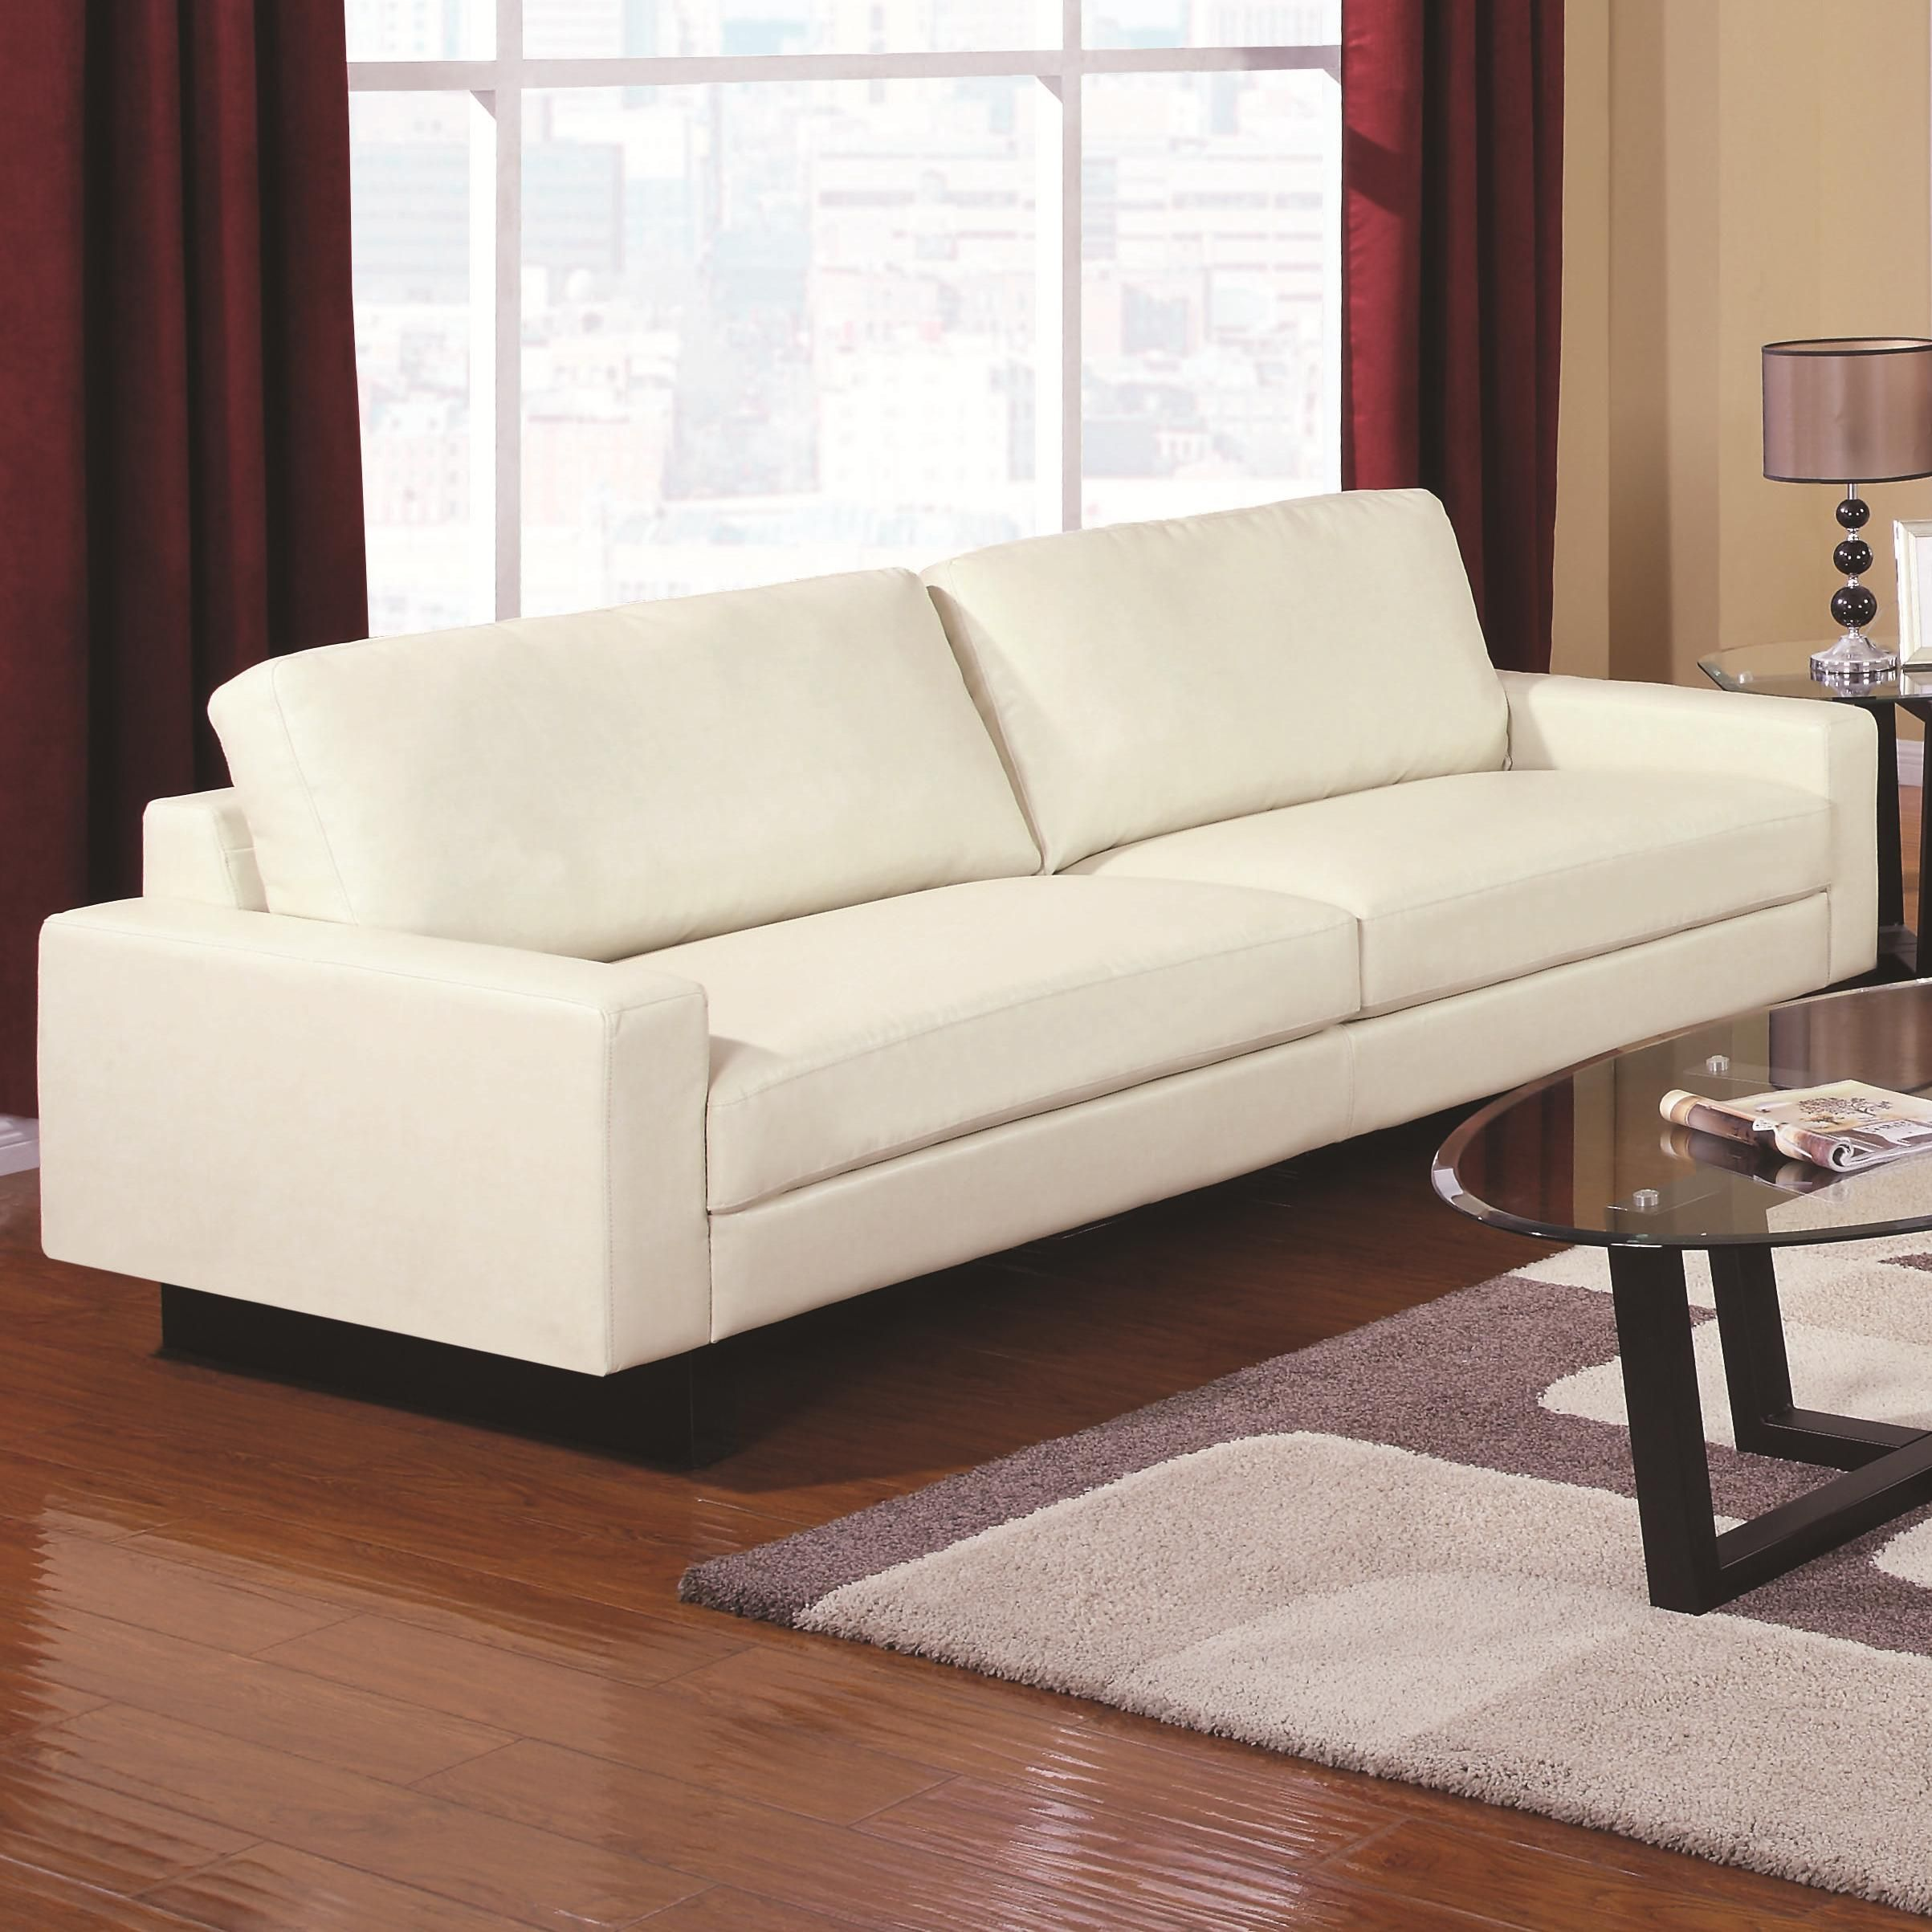 504301 - Ava Contemporary Leather Sofa with Platform Legs   *buy ...